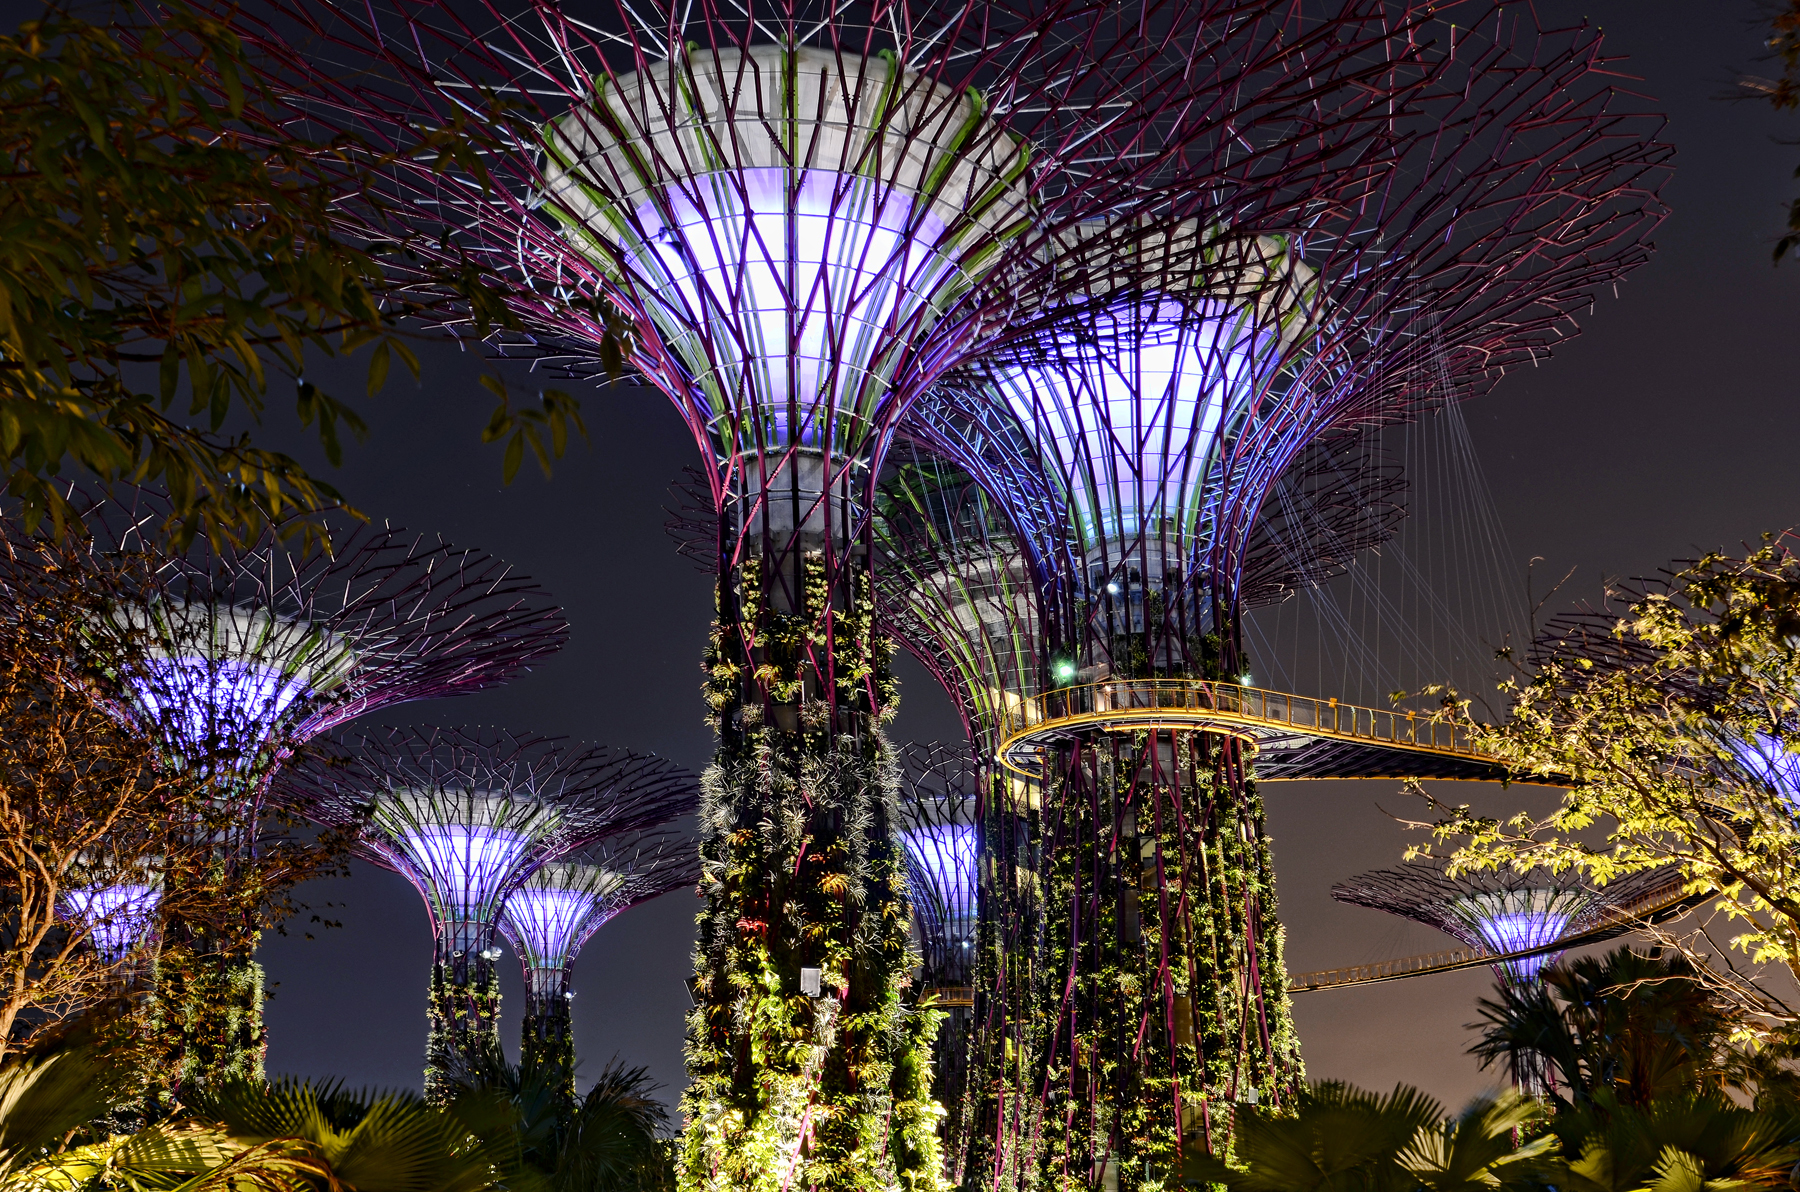 Gardens by the Bay - Urban Park in Singapore - Thousand ...